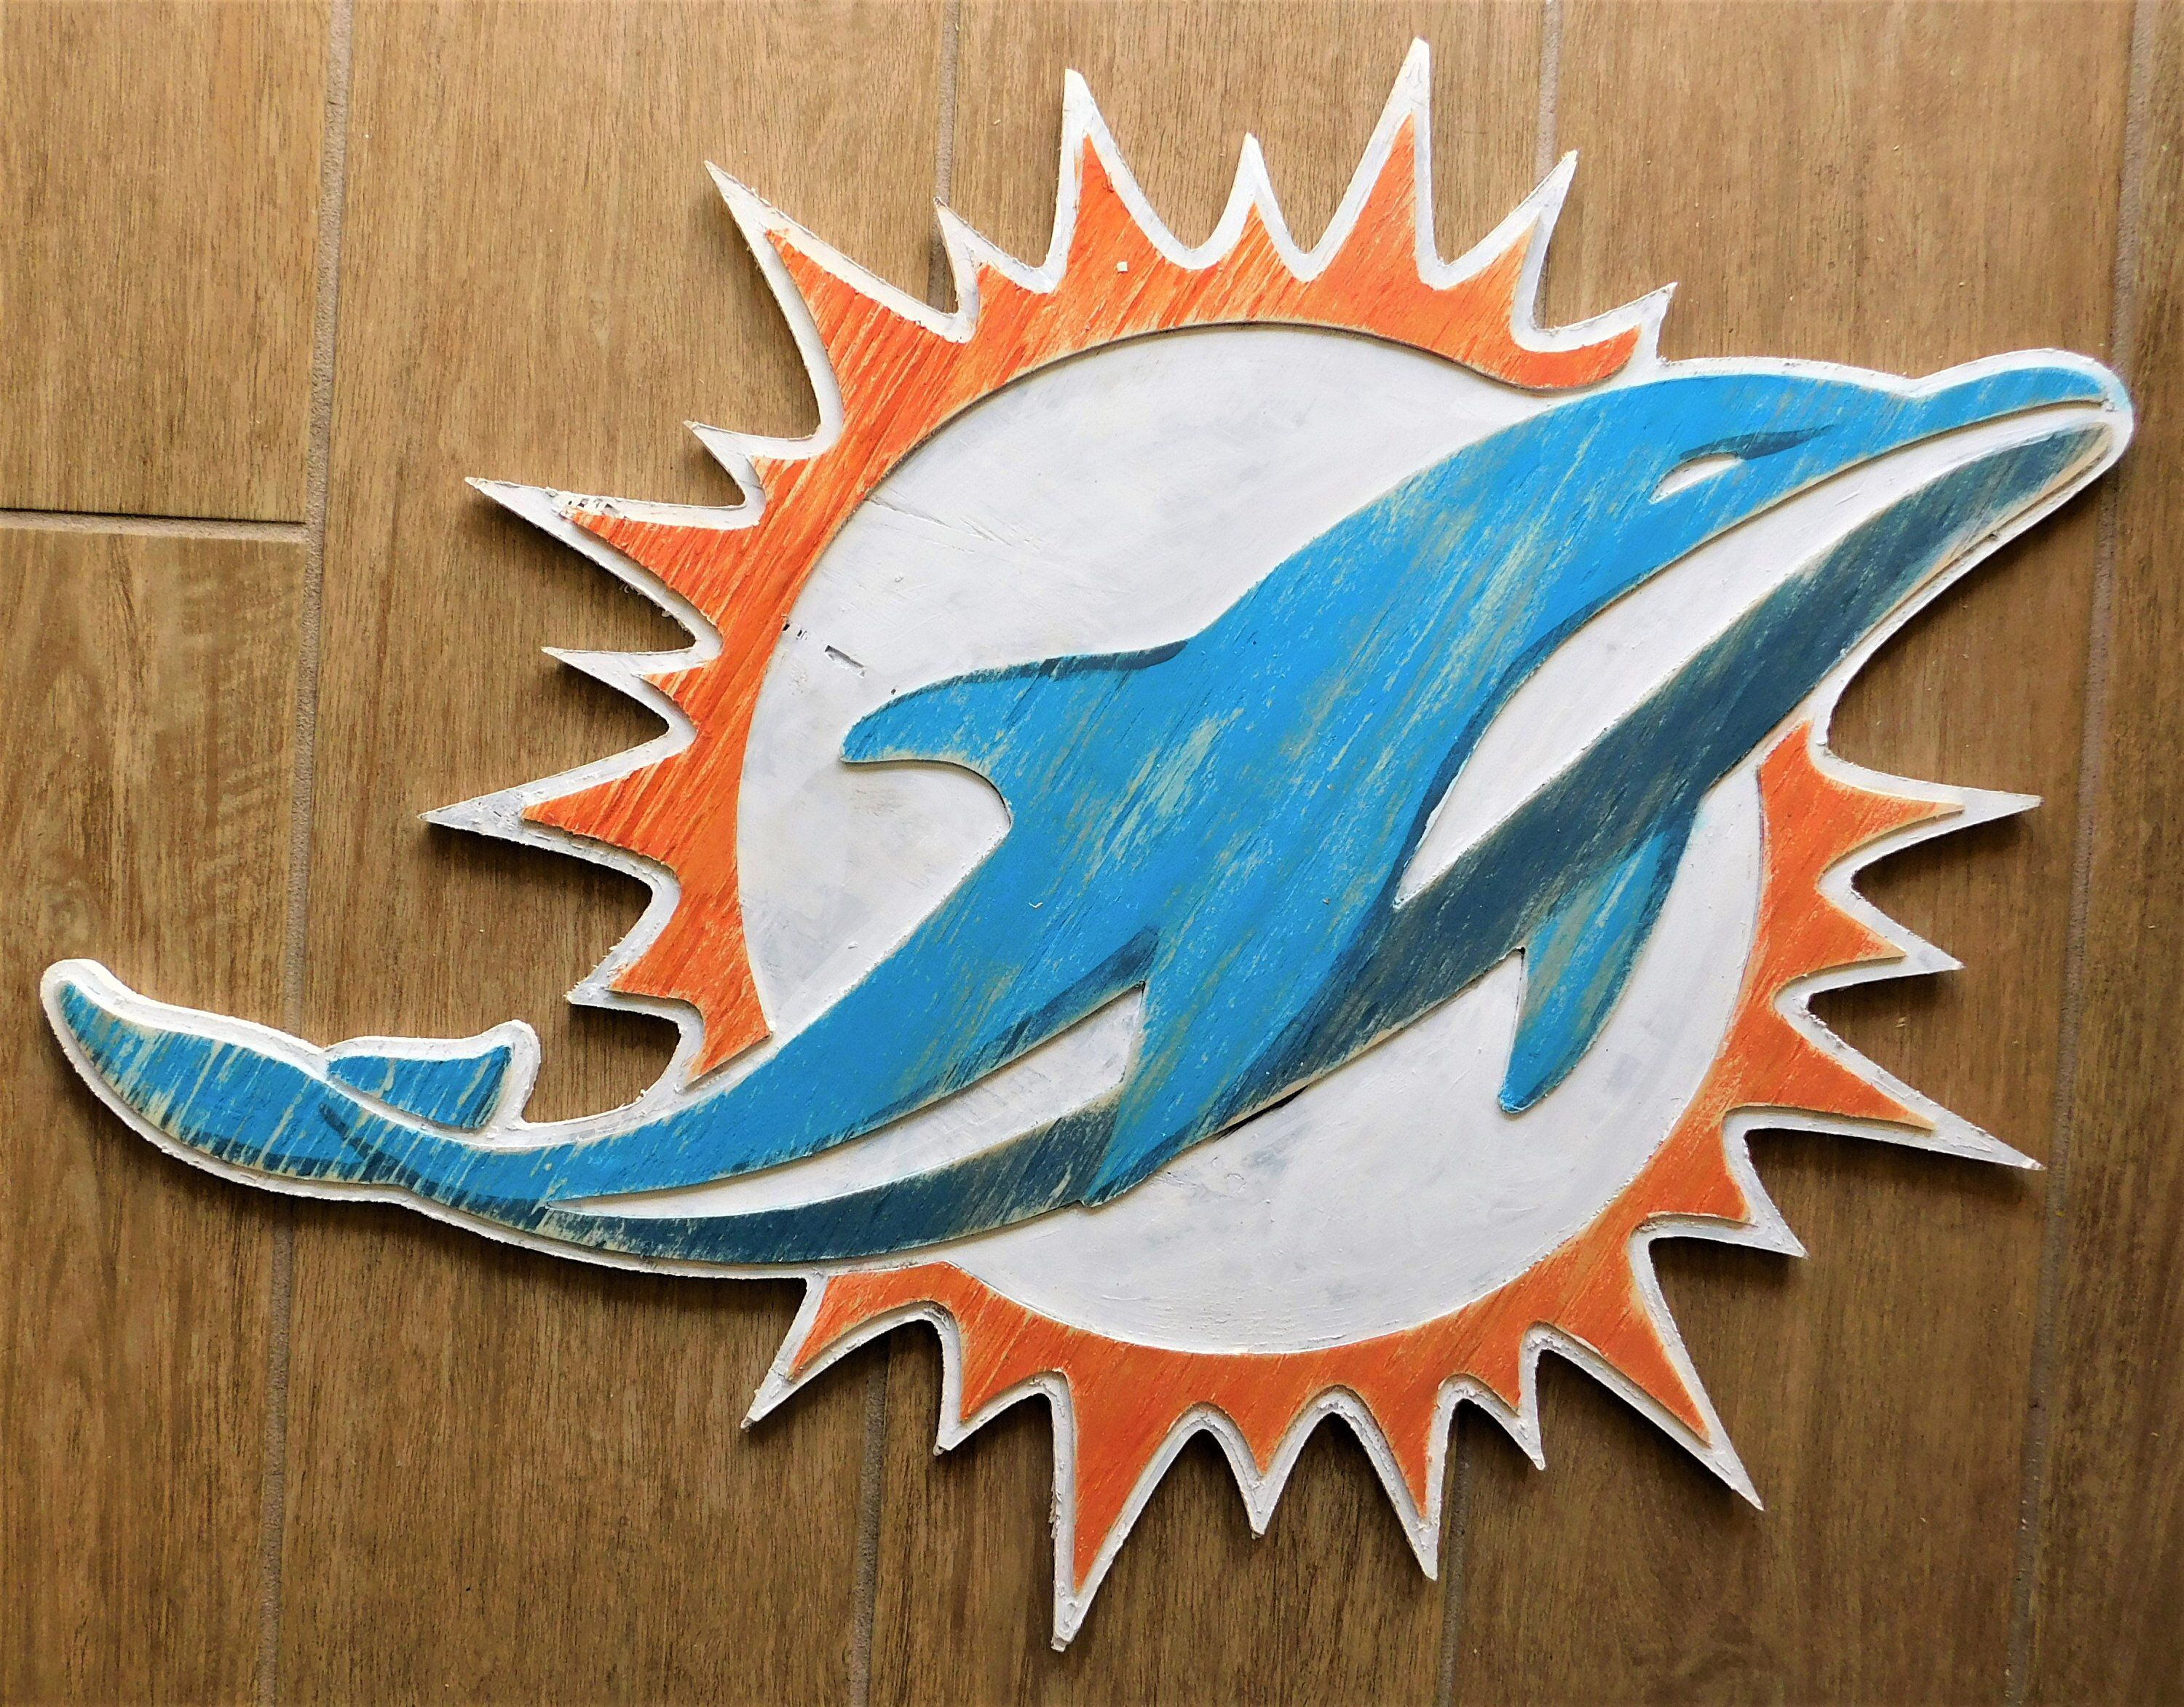 Miami Dolphins Wooden Wall Hanging Sign Etsy Wooden Wall Hangings Hanging Signs Wall Hanging